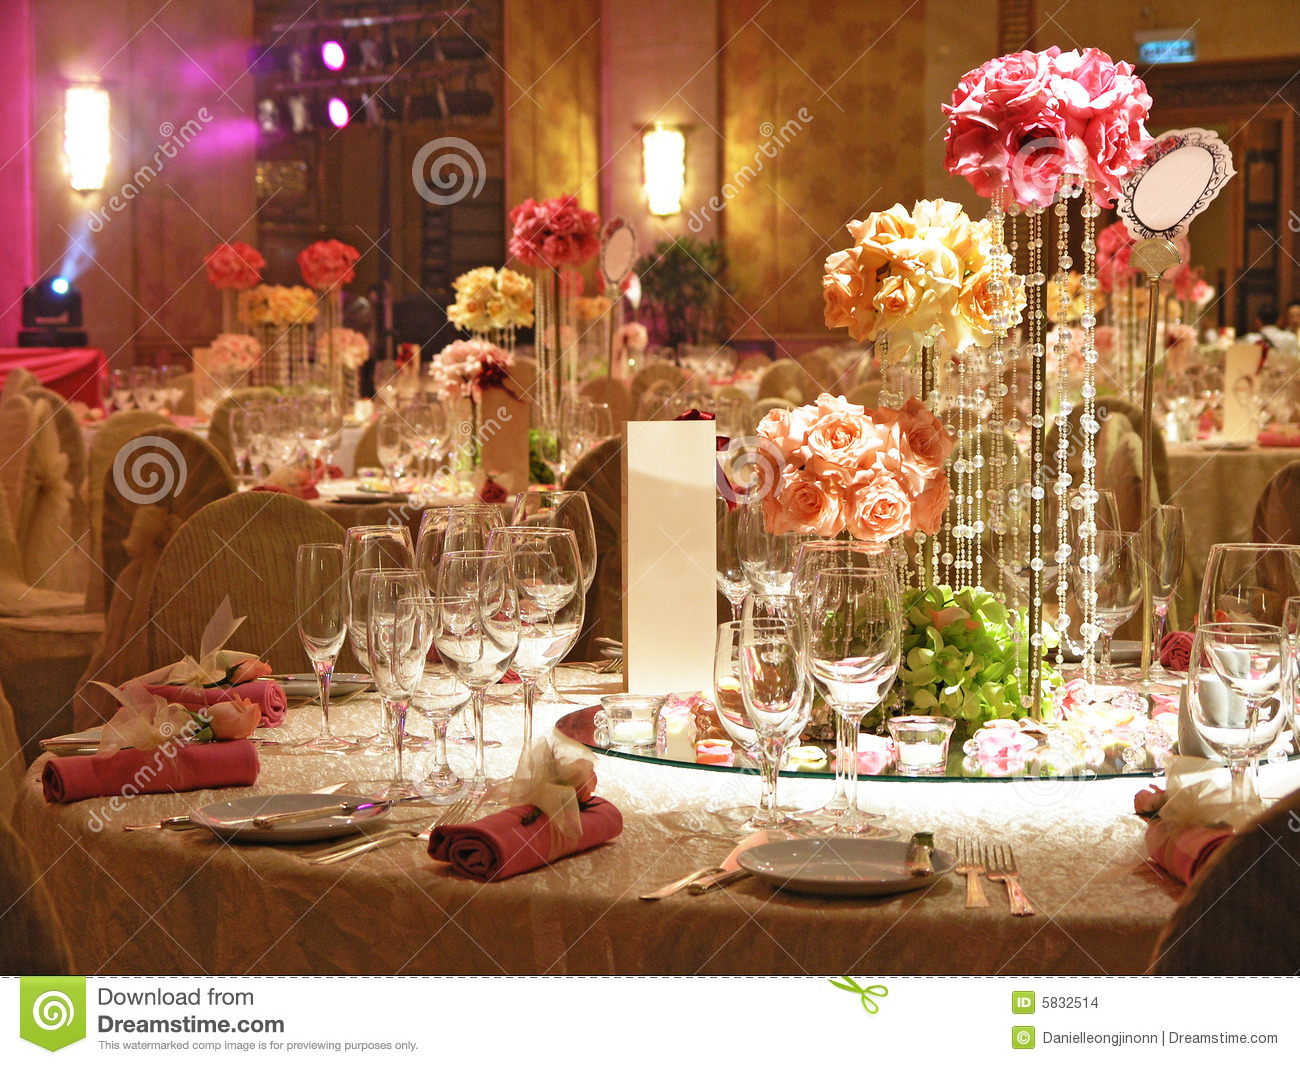 Wedding table setting. Color material. & Wedding table setting stock photo. Image of color material - 5832514